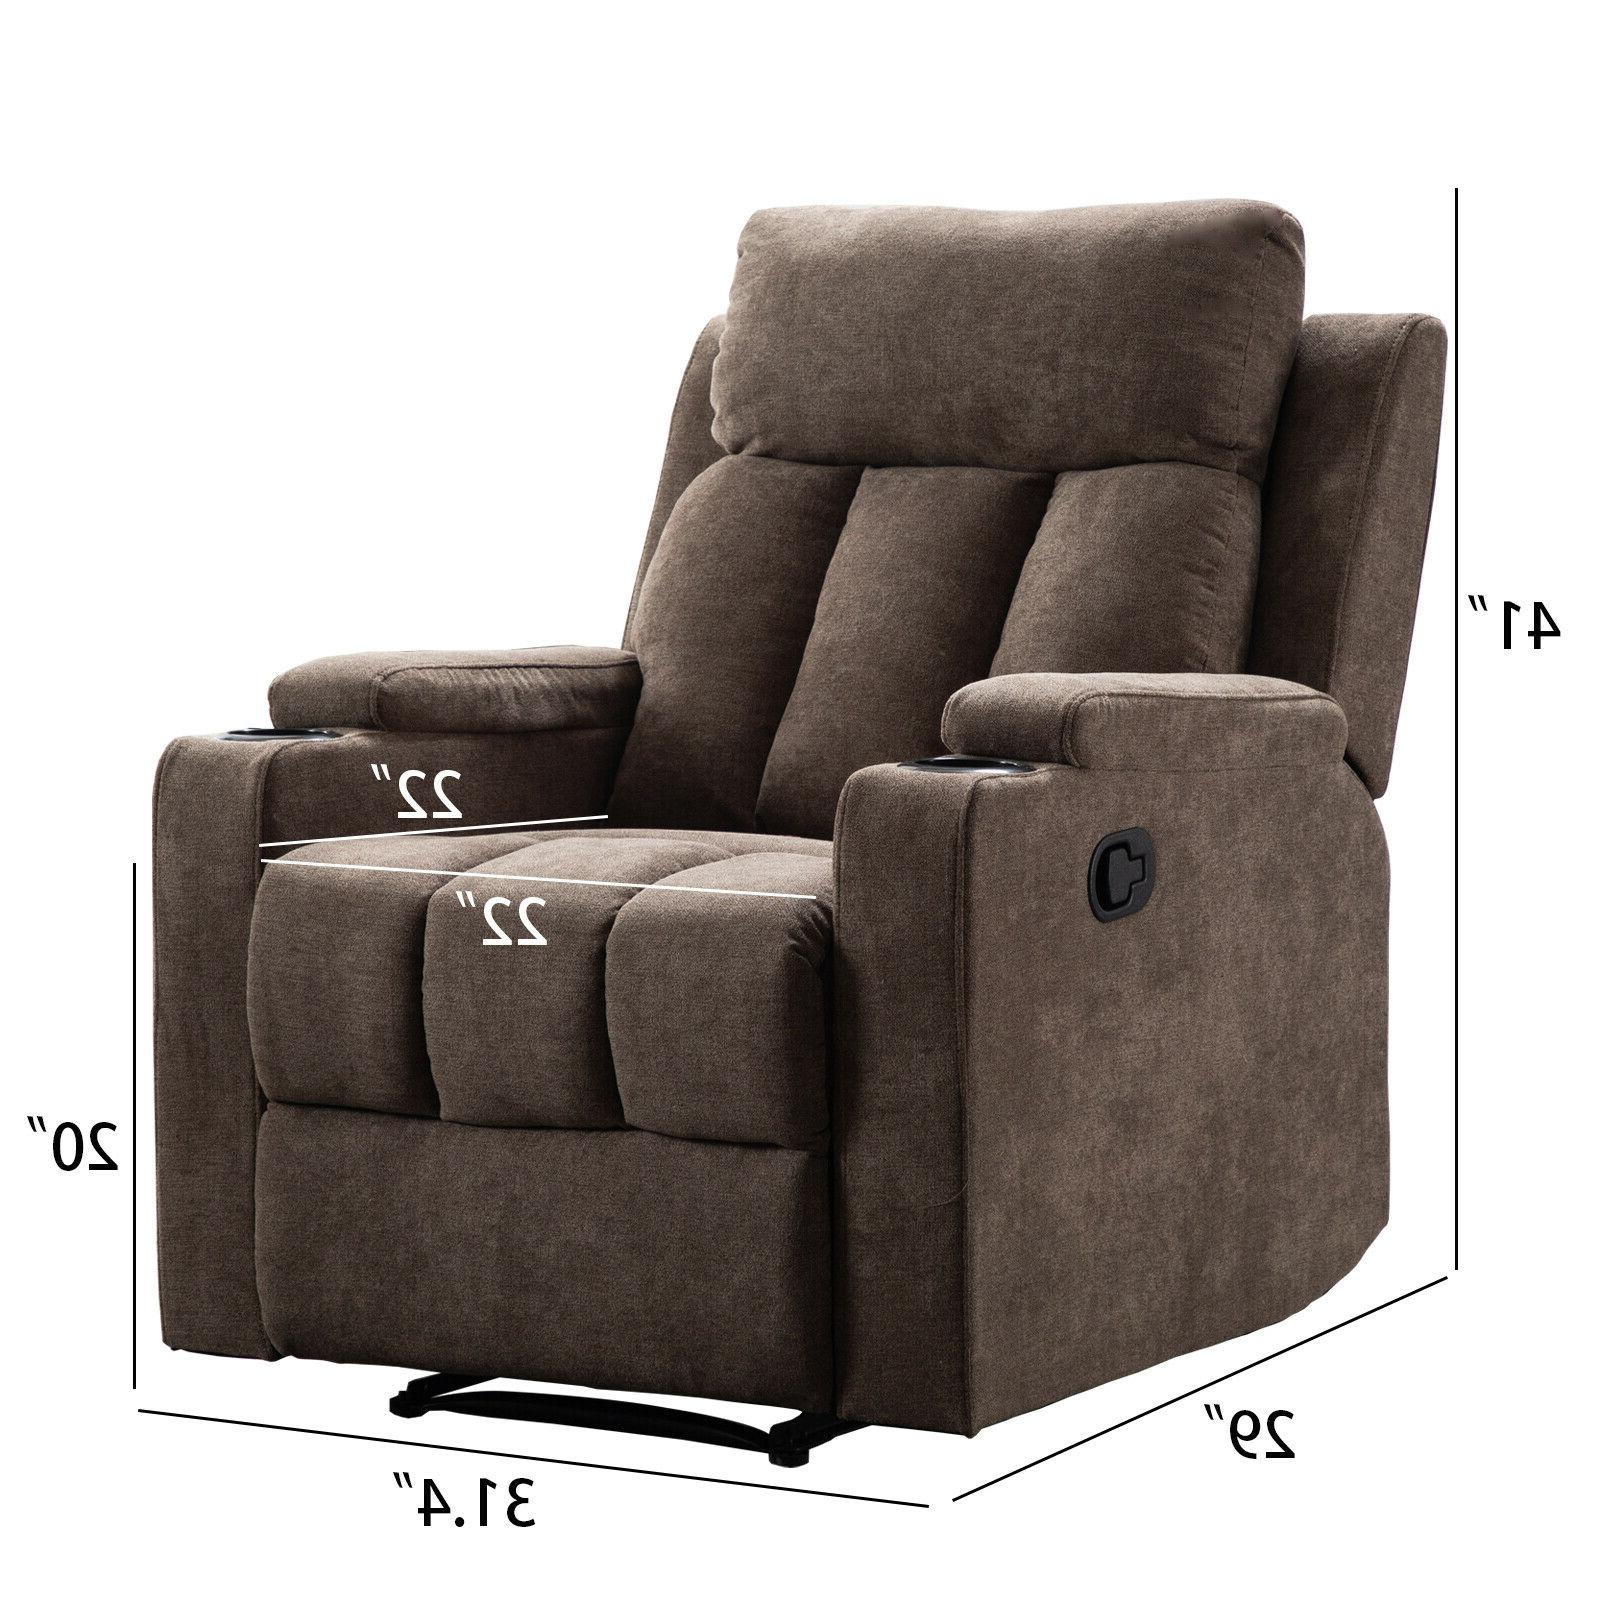 Manual Chair Living Room Recliner with Cup